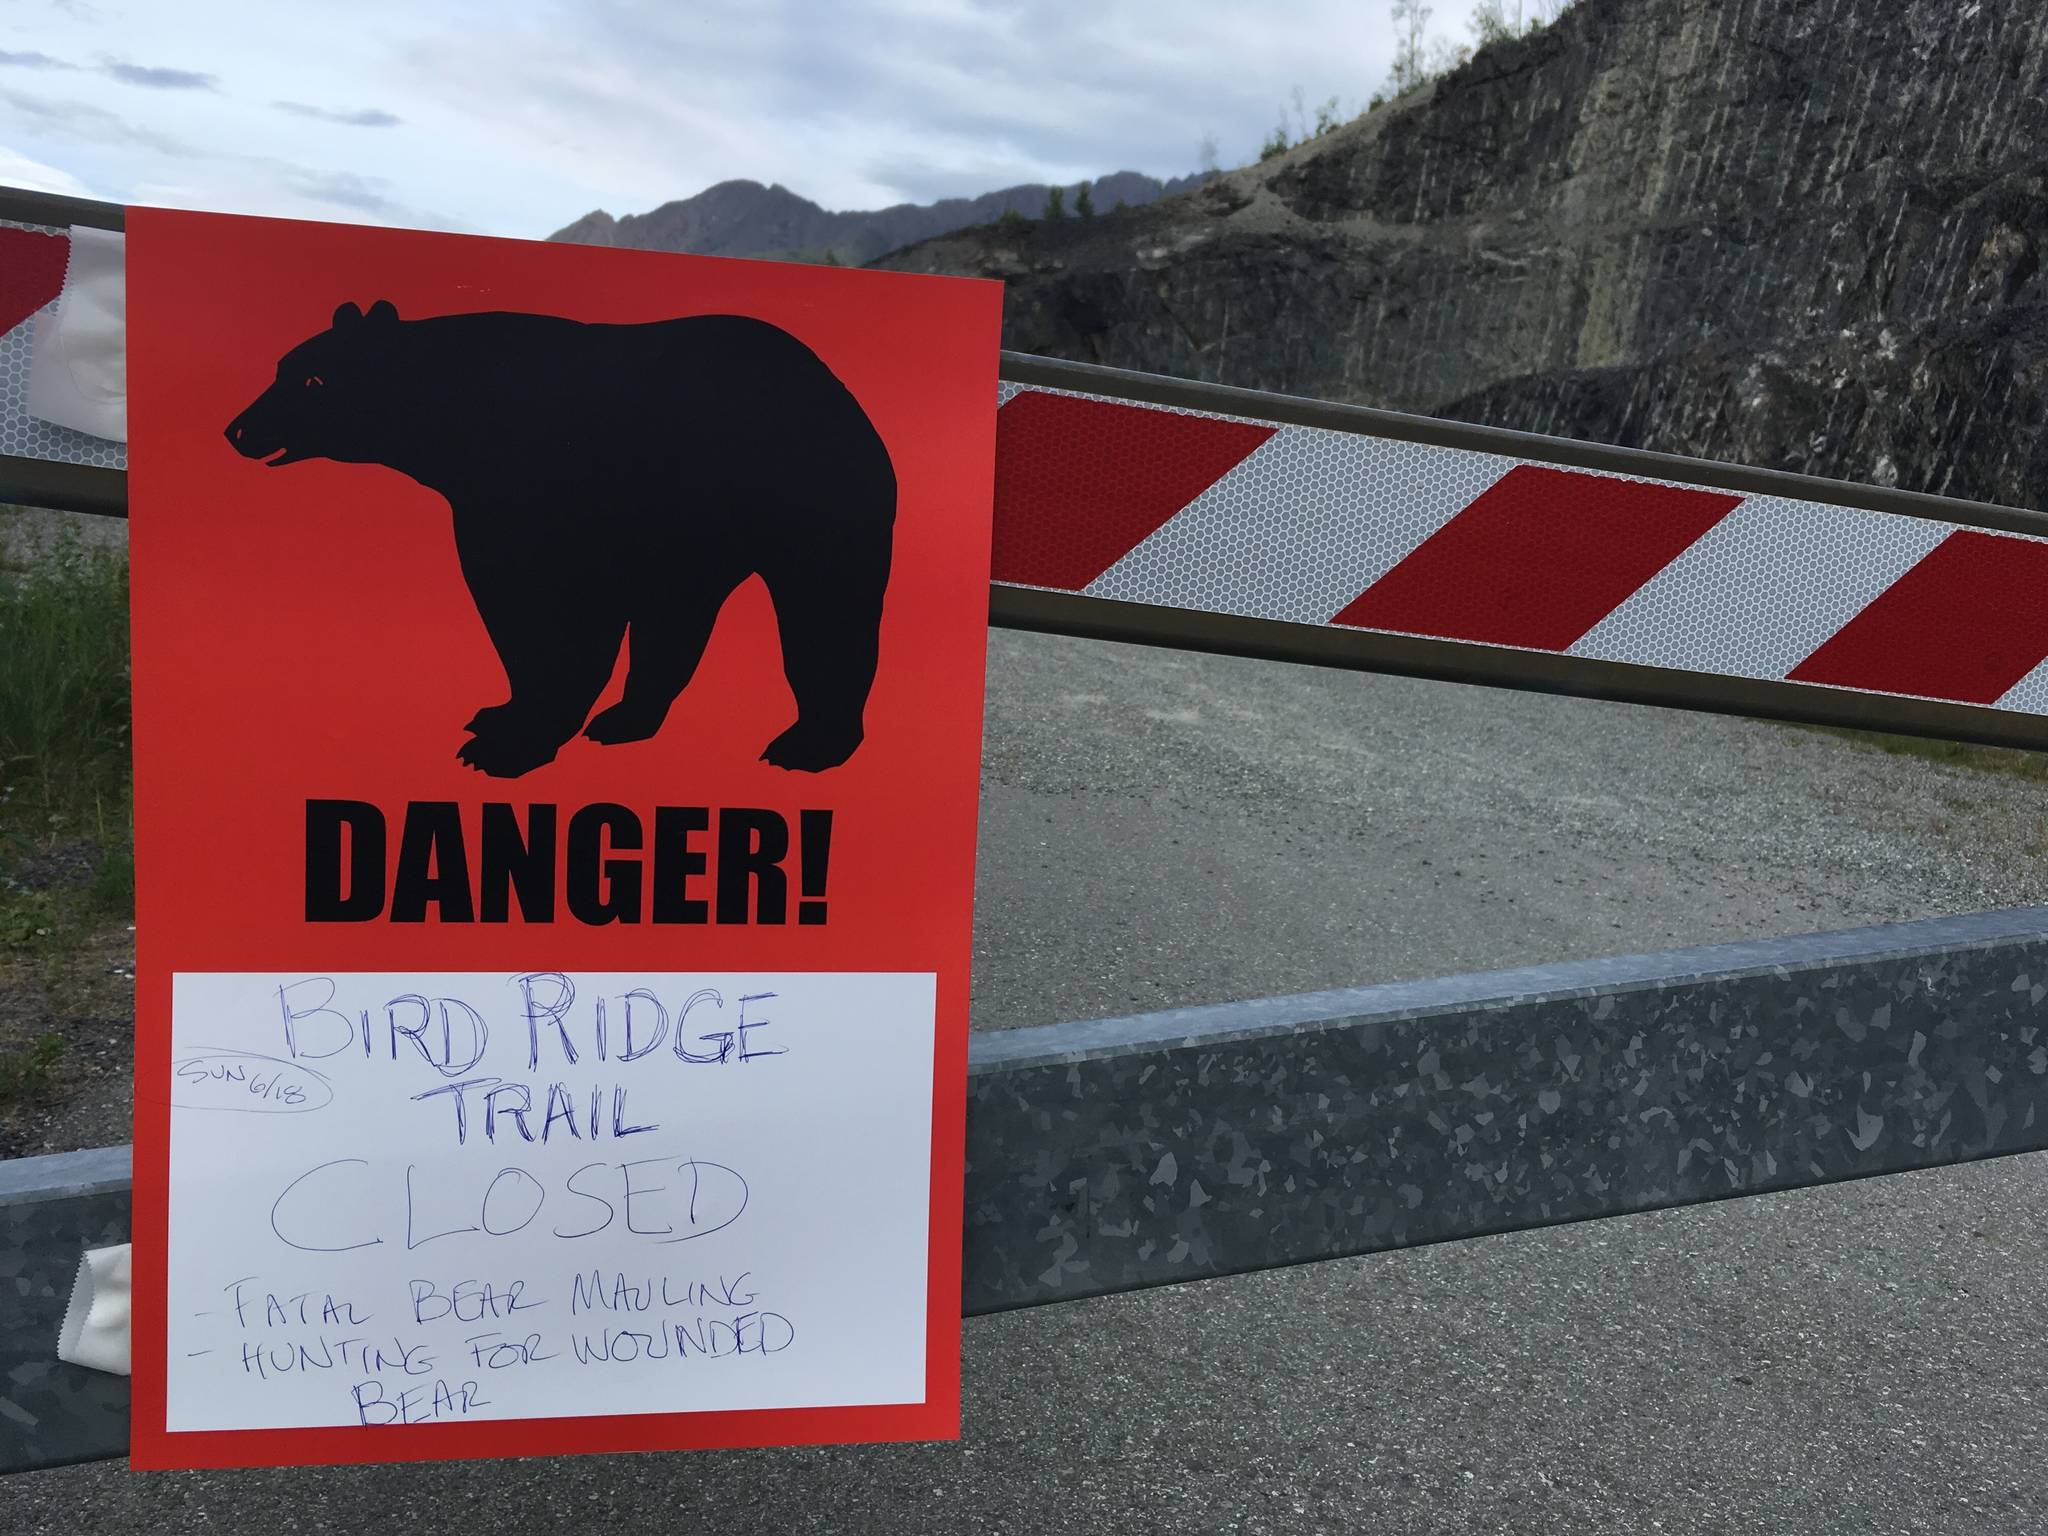 A sign warns people that the trail head is closed on Monday, June 19, 2017, after a fatal bear mauling at Bird Ridge Trail in Anchorage, Alaska. Authorities say a black bear killed a 16-year-old runner while he was competing in an Alaska race on Sunday. (Mark Thiessen   The Associated Press)